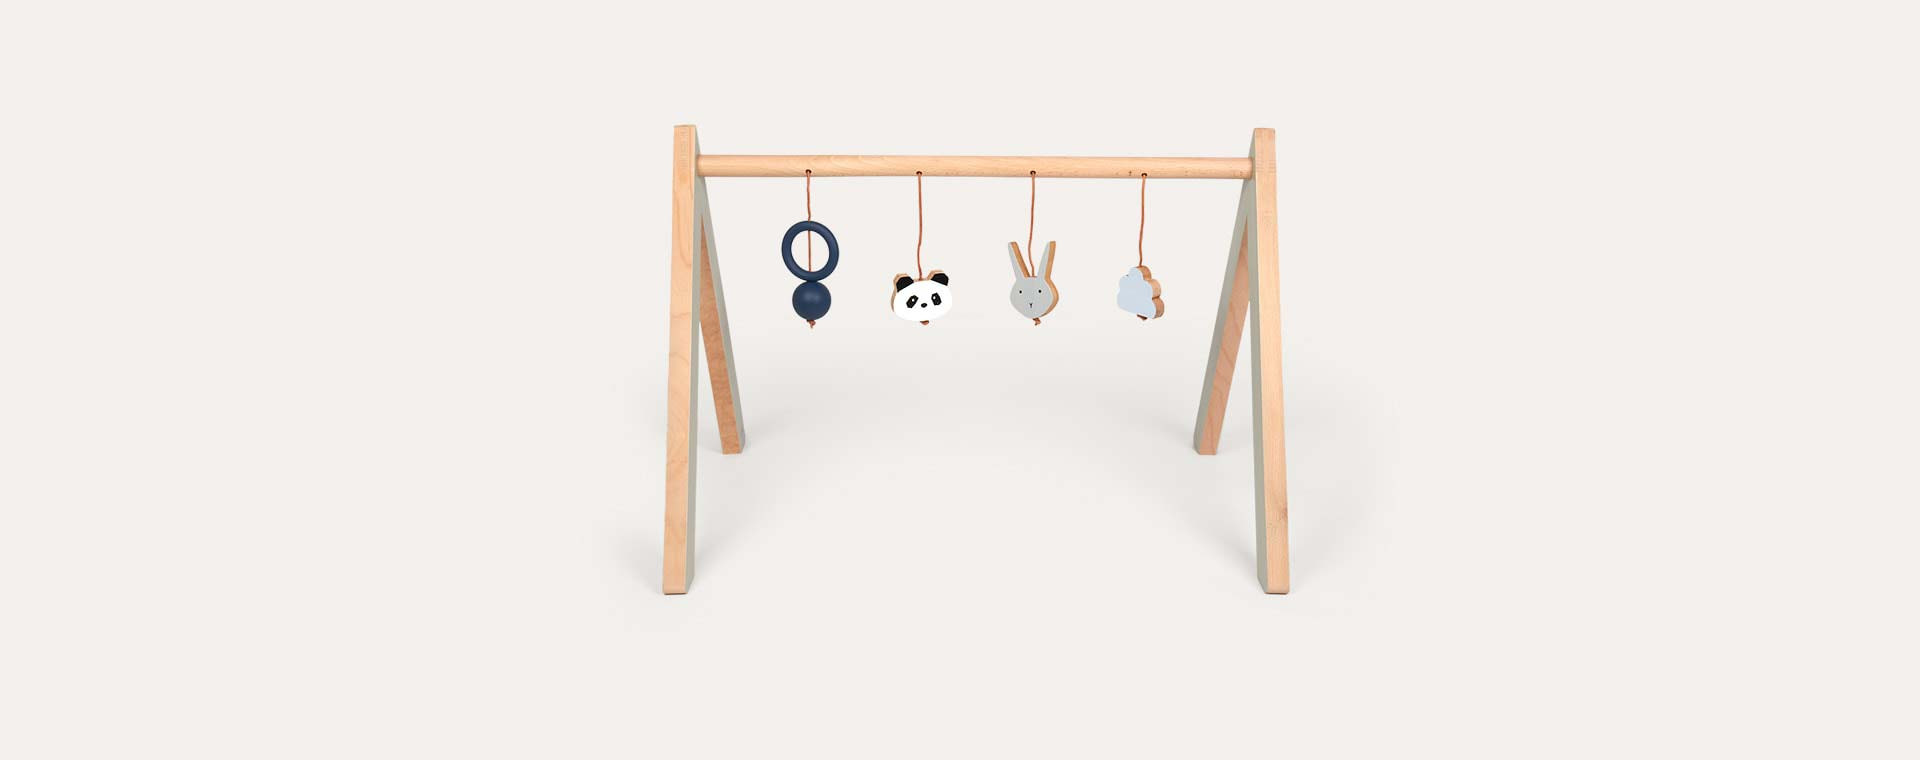 Multi Liewood Wooden Play Gym